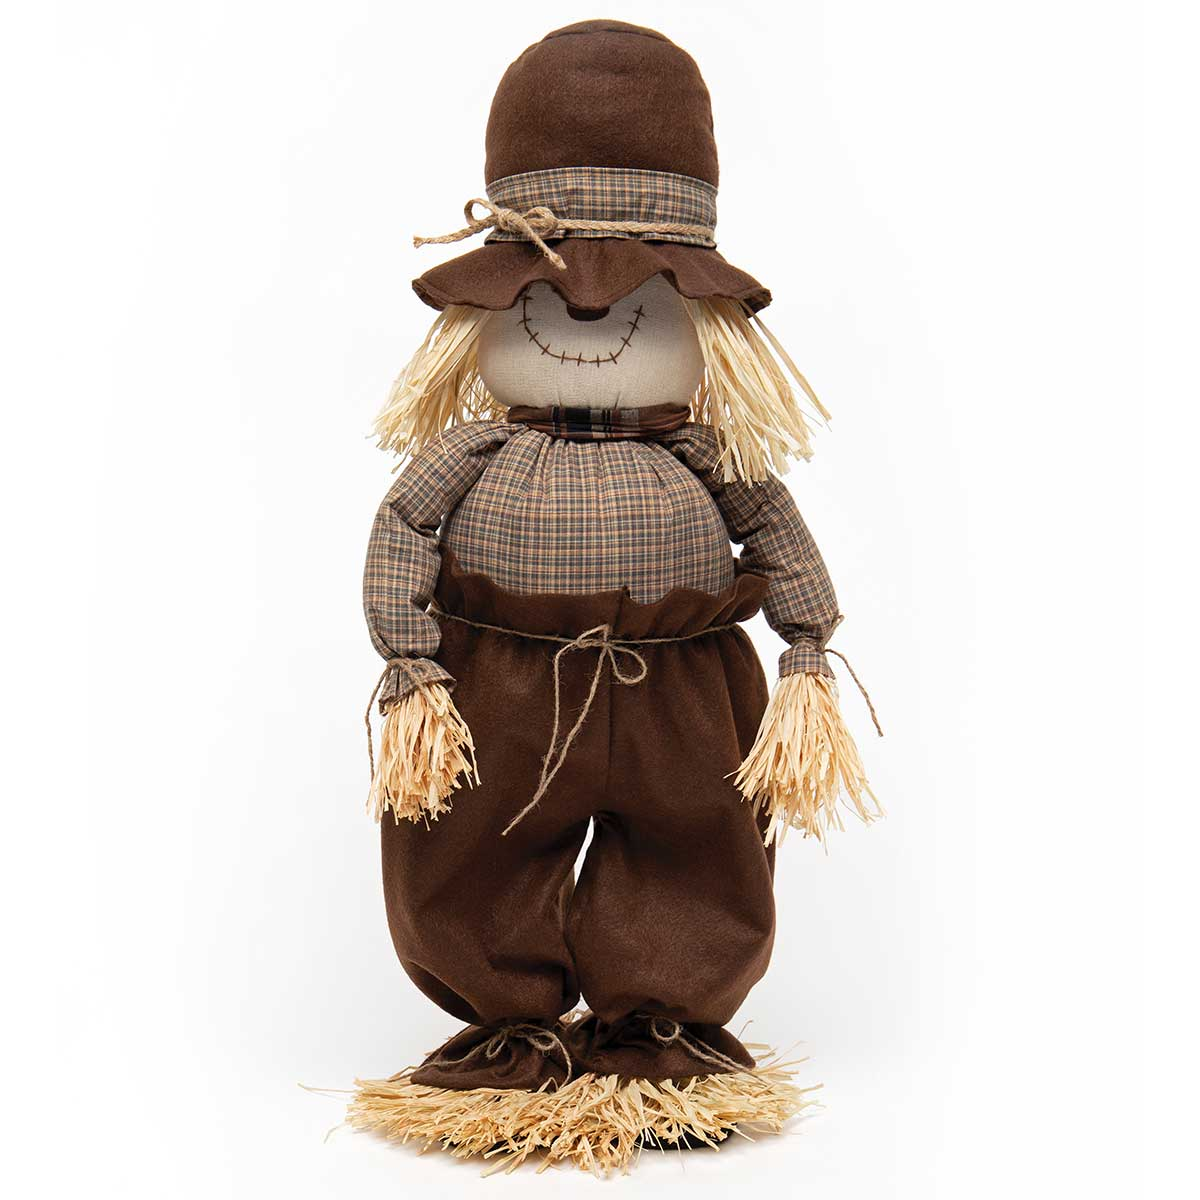 MR. SCARECROW BROWN/BEIGE GNOME - I'M EXPANDABLE